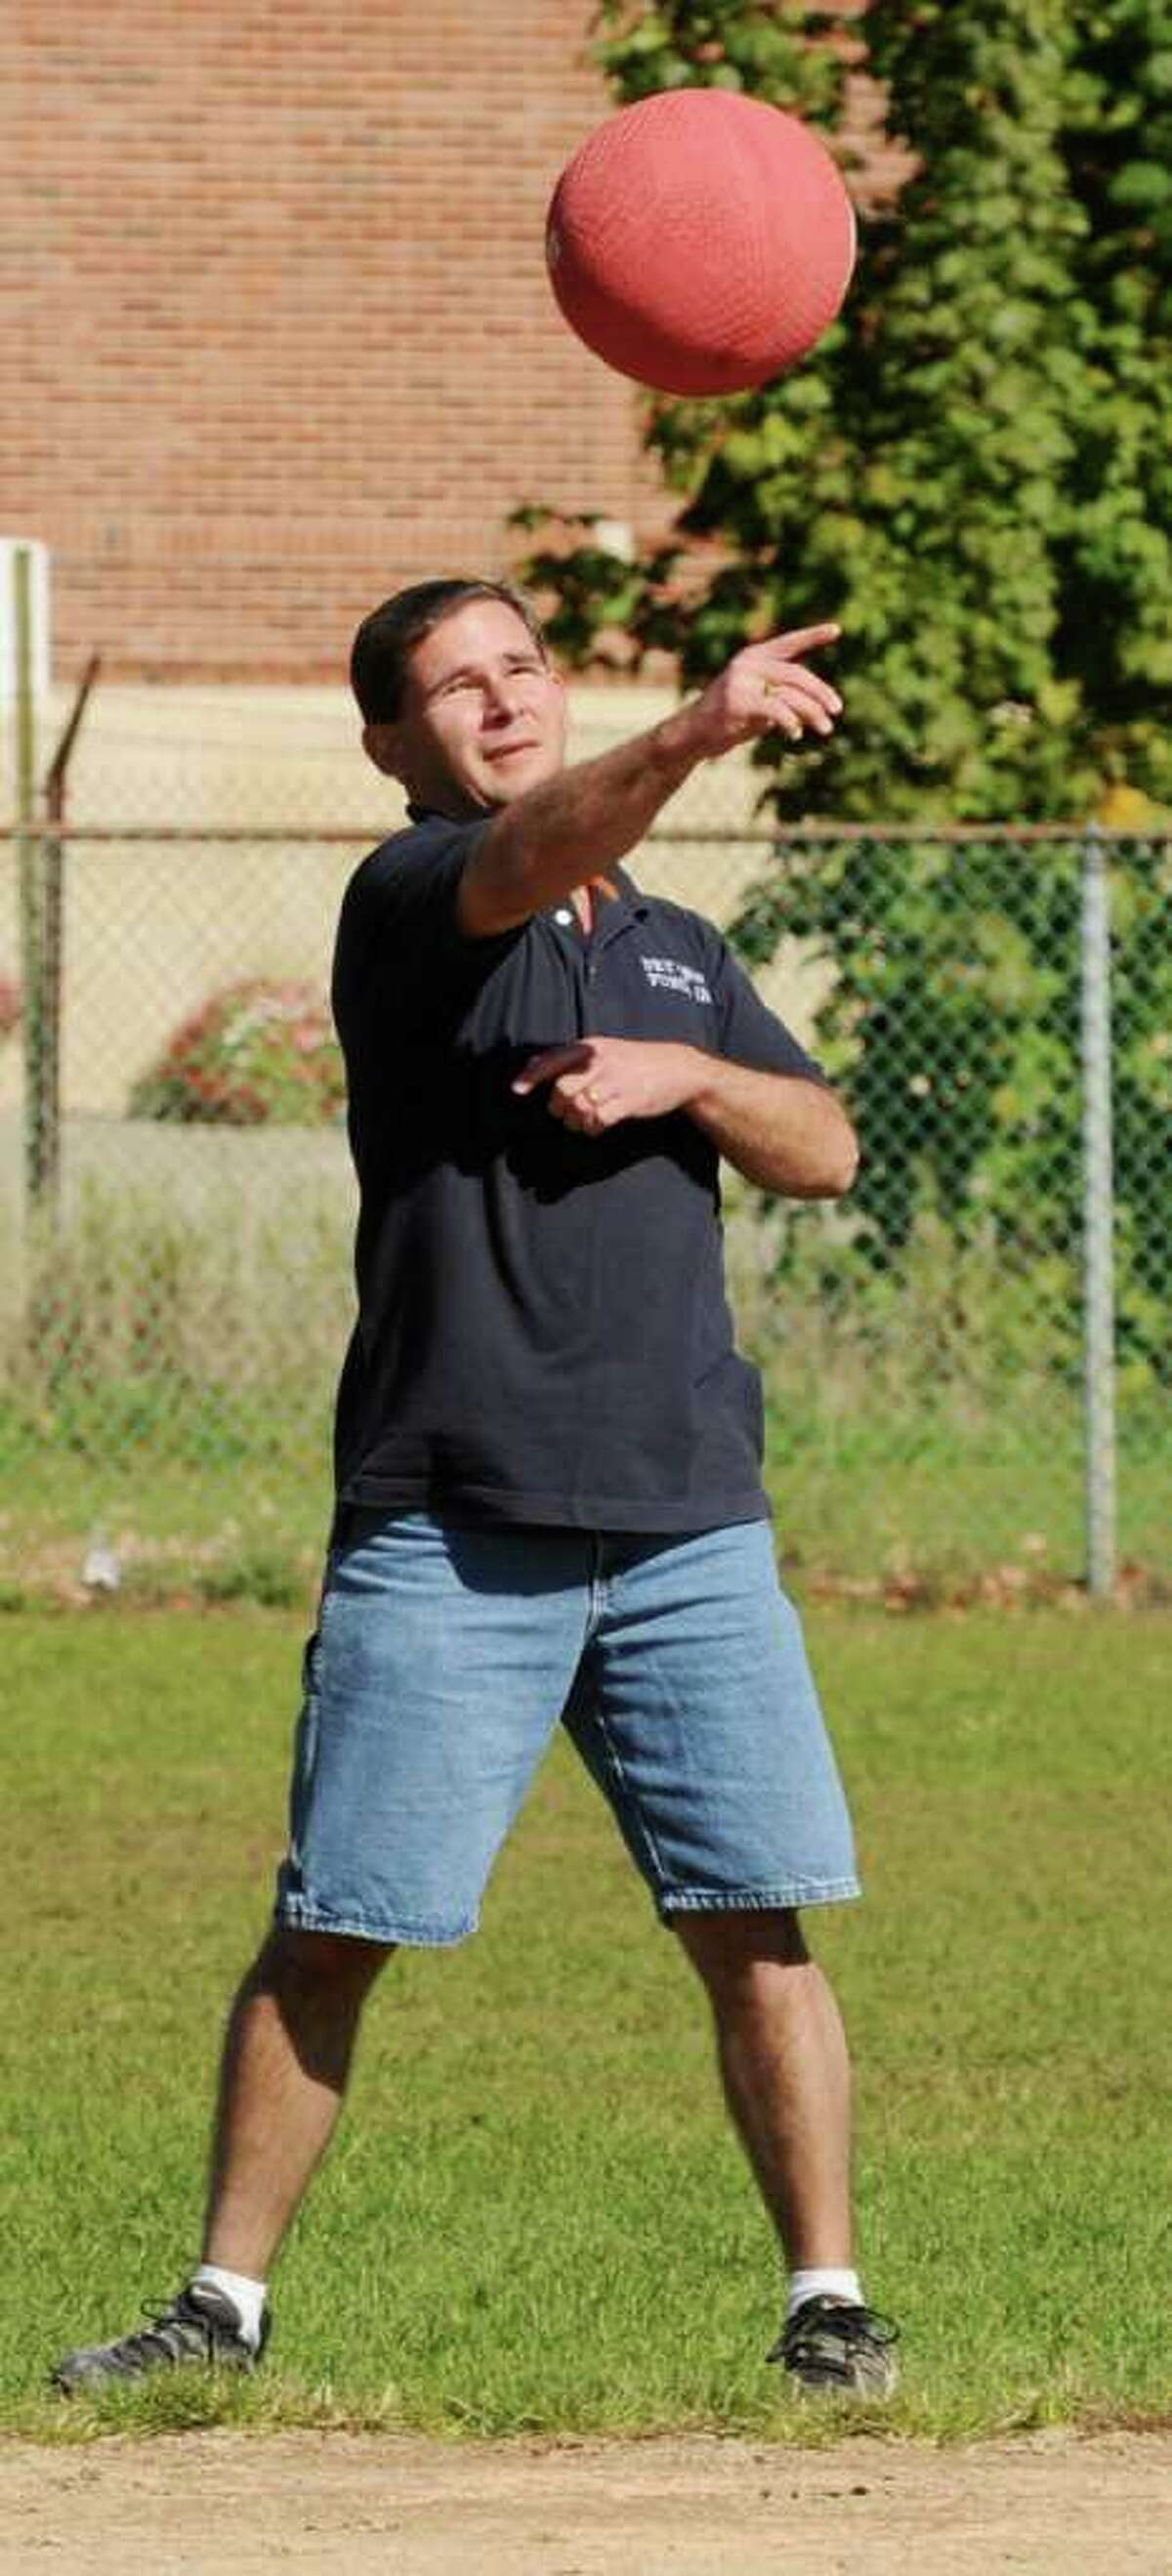 Mark Balistreri of Netter's Team fields a ground ball at the second annual Kickball Tournament to support Netter's Fund at Knickerbacker Park in Lansingburgh on Sunday, Oct. 10, 2010. (Luanne Ferris / Times Union)